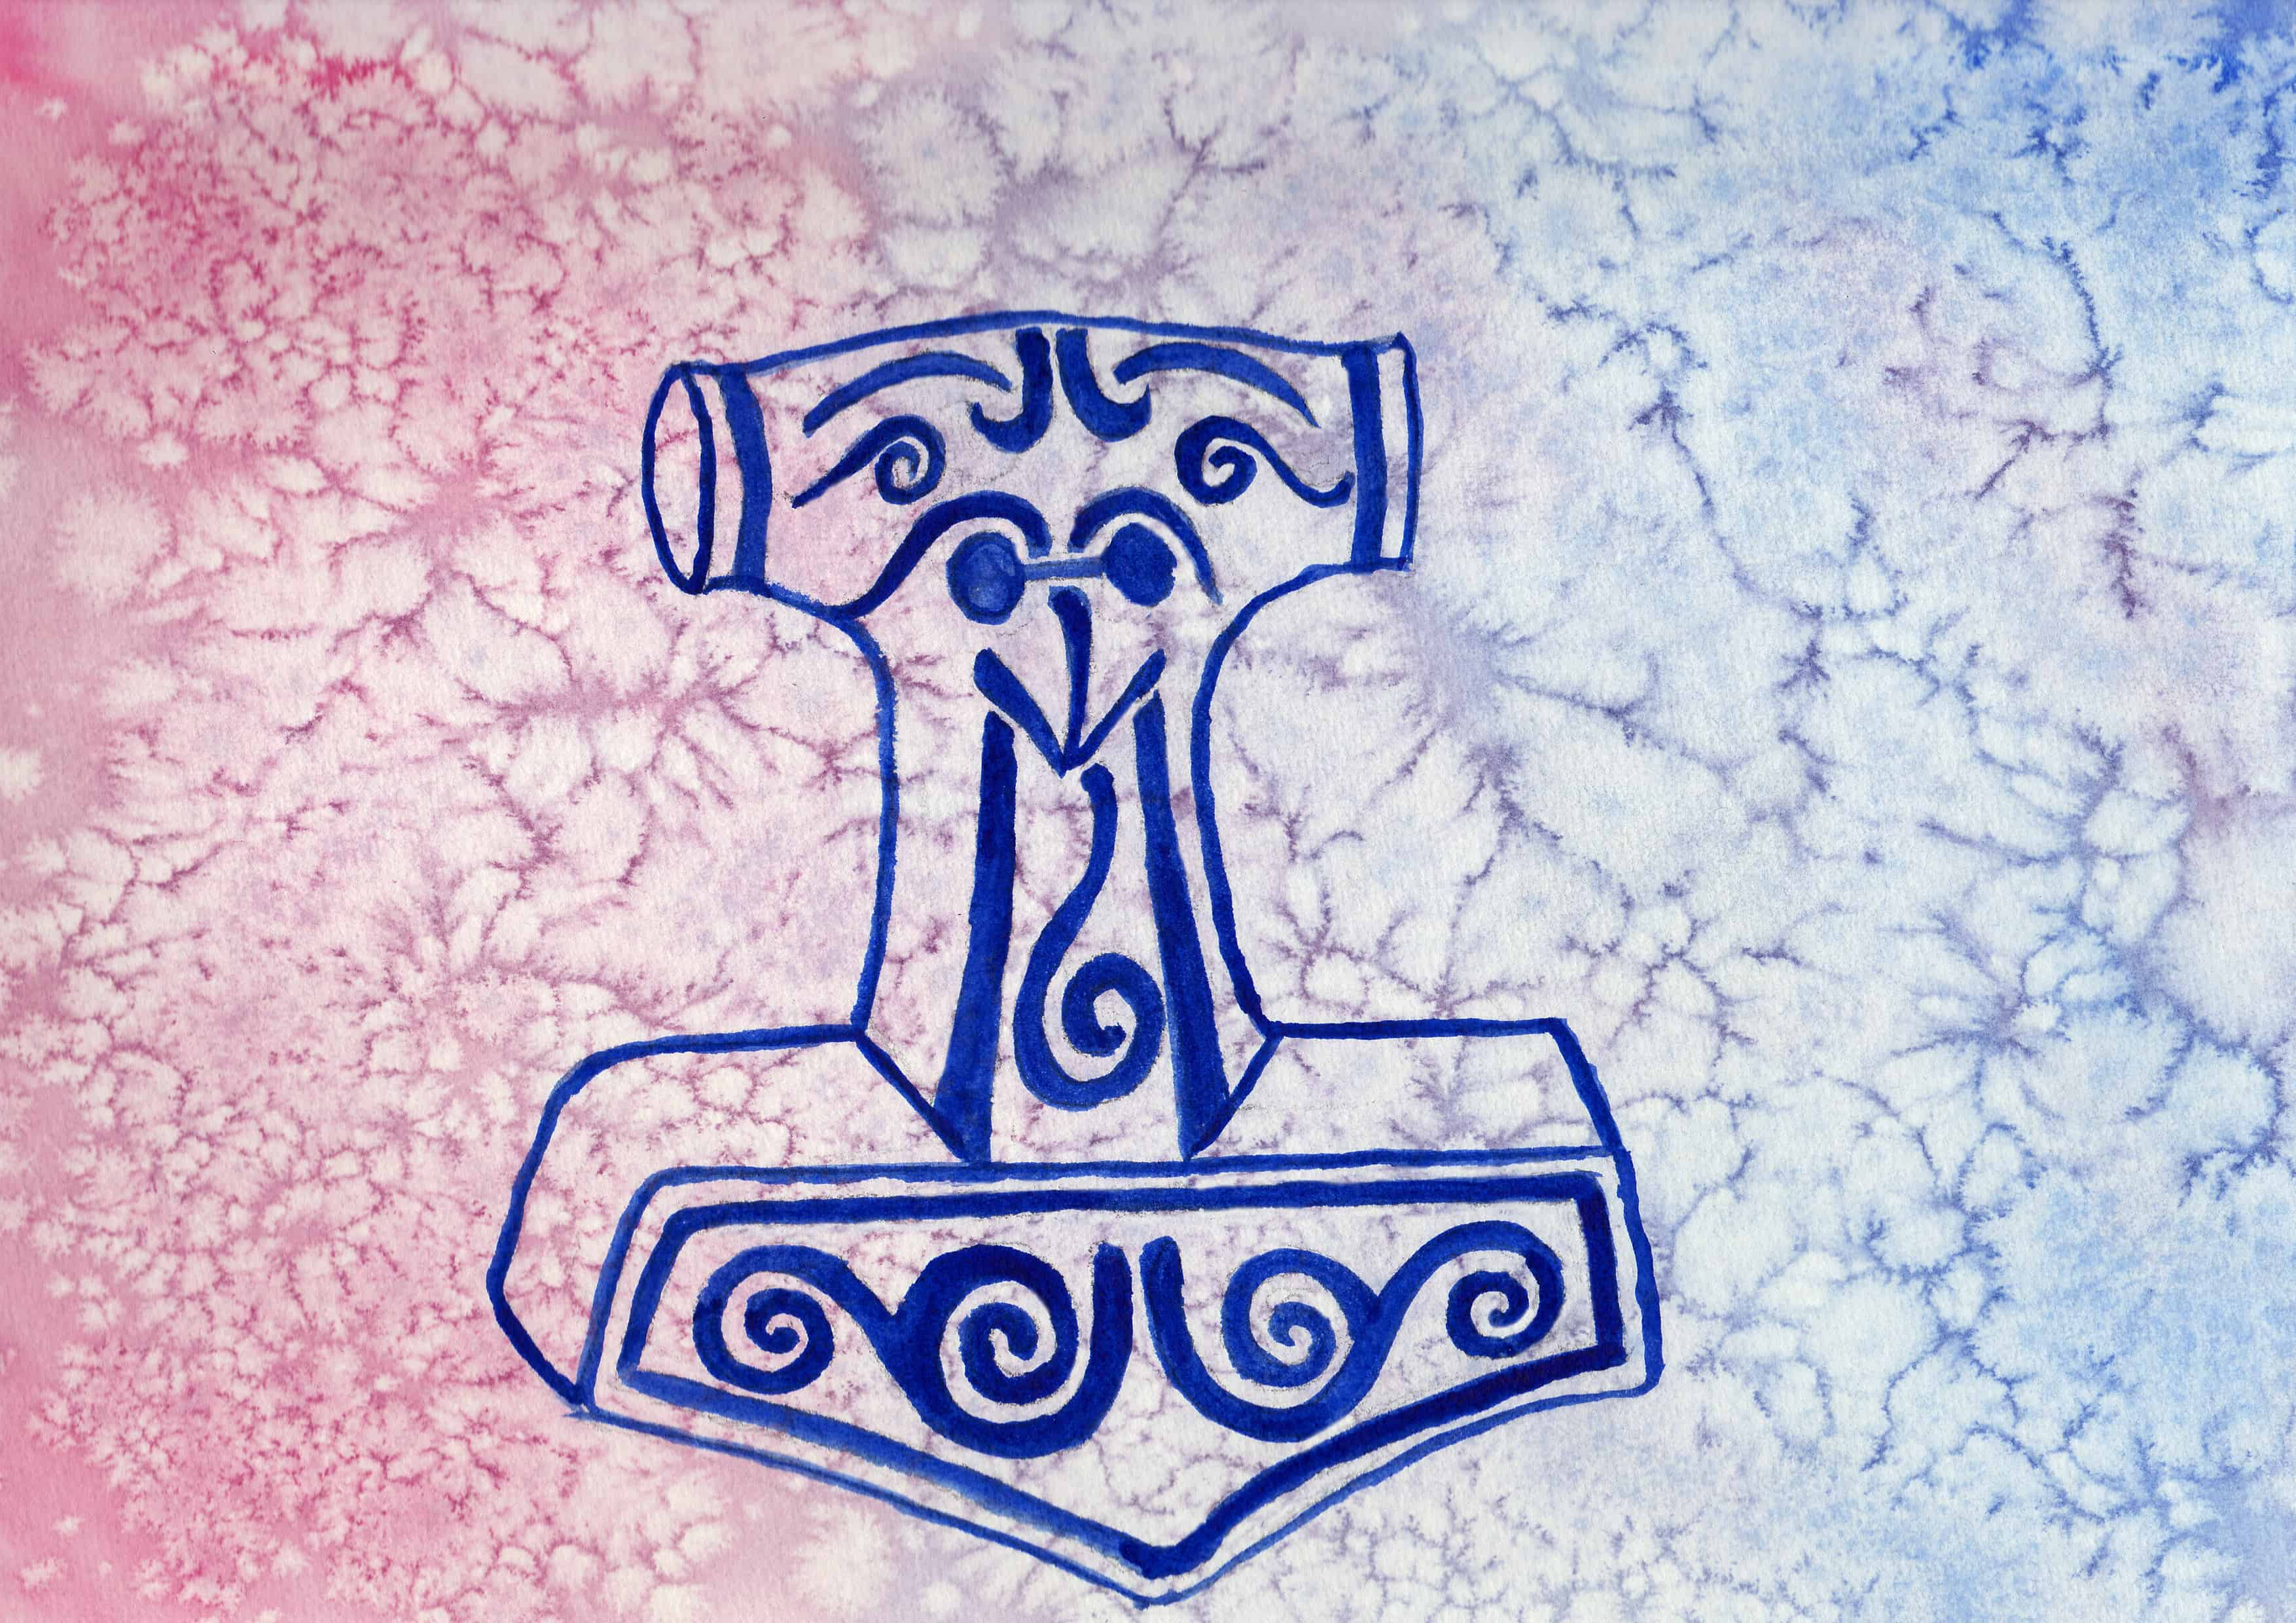 Thors hammer 100 sacred symbols by linda ursin thors hammer 100 sacred symbols in watercolour by linda ursin buycottarizona Choice Image